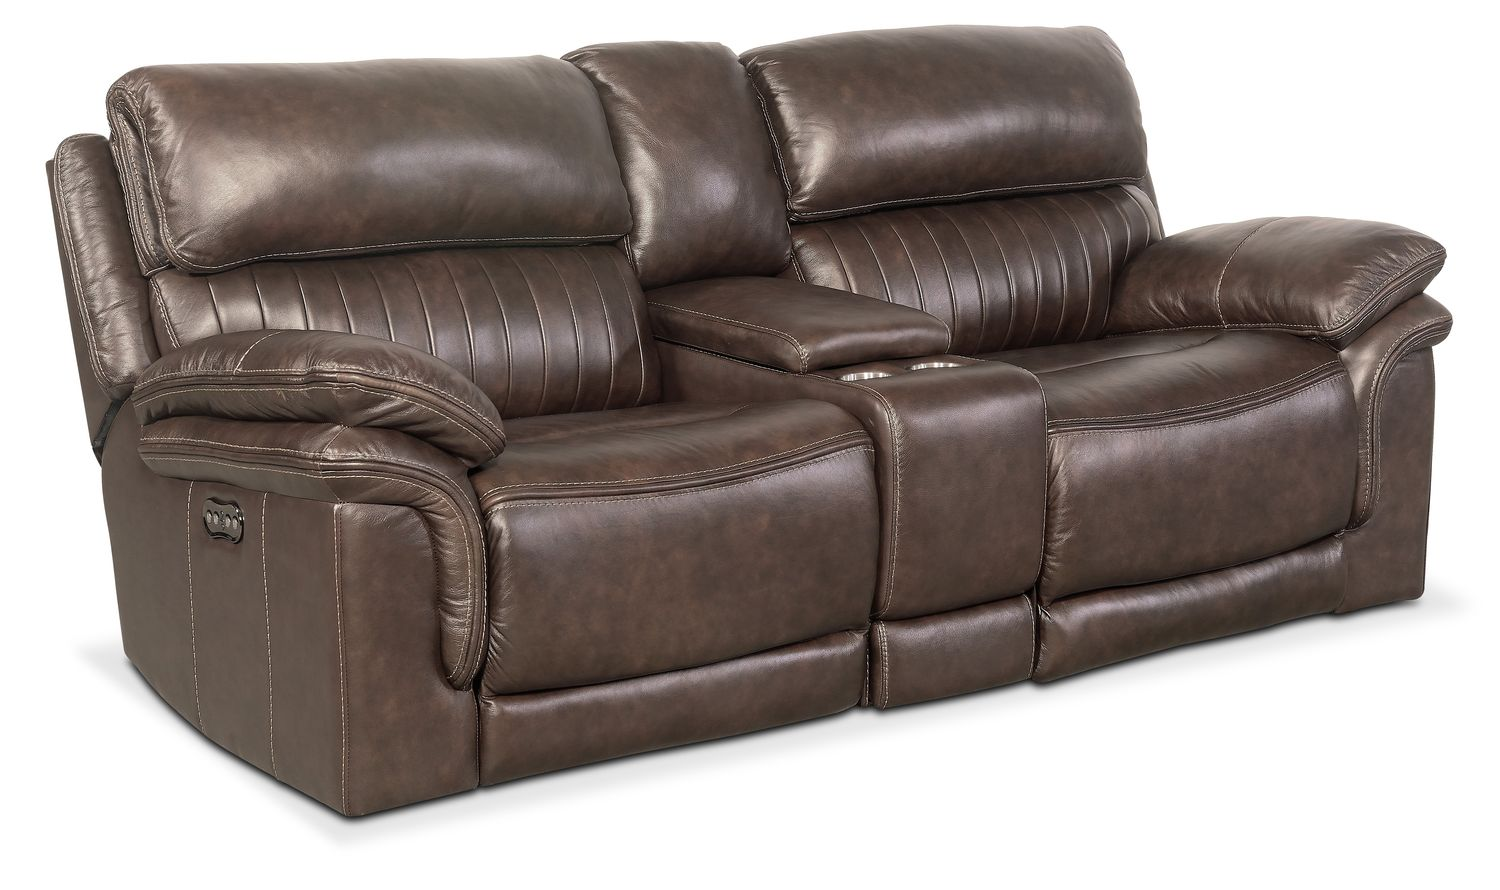 Living Room Furniture   Monterey 3 Piece Power Sofa With Console   Brown